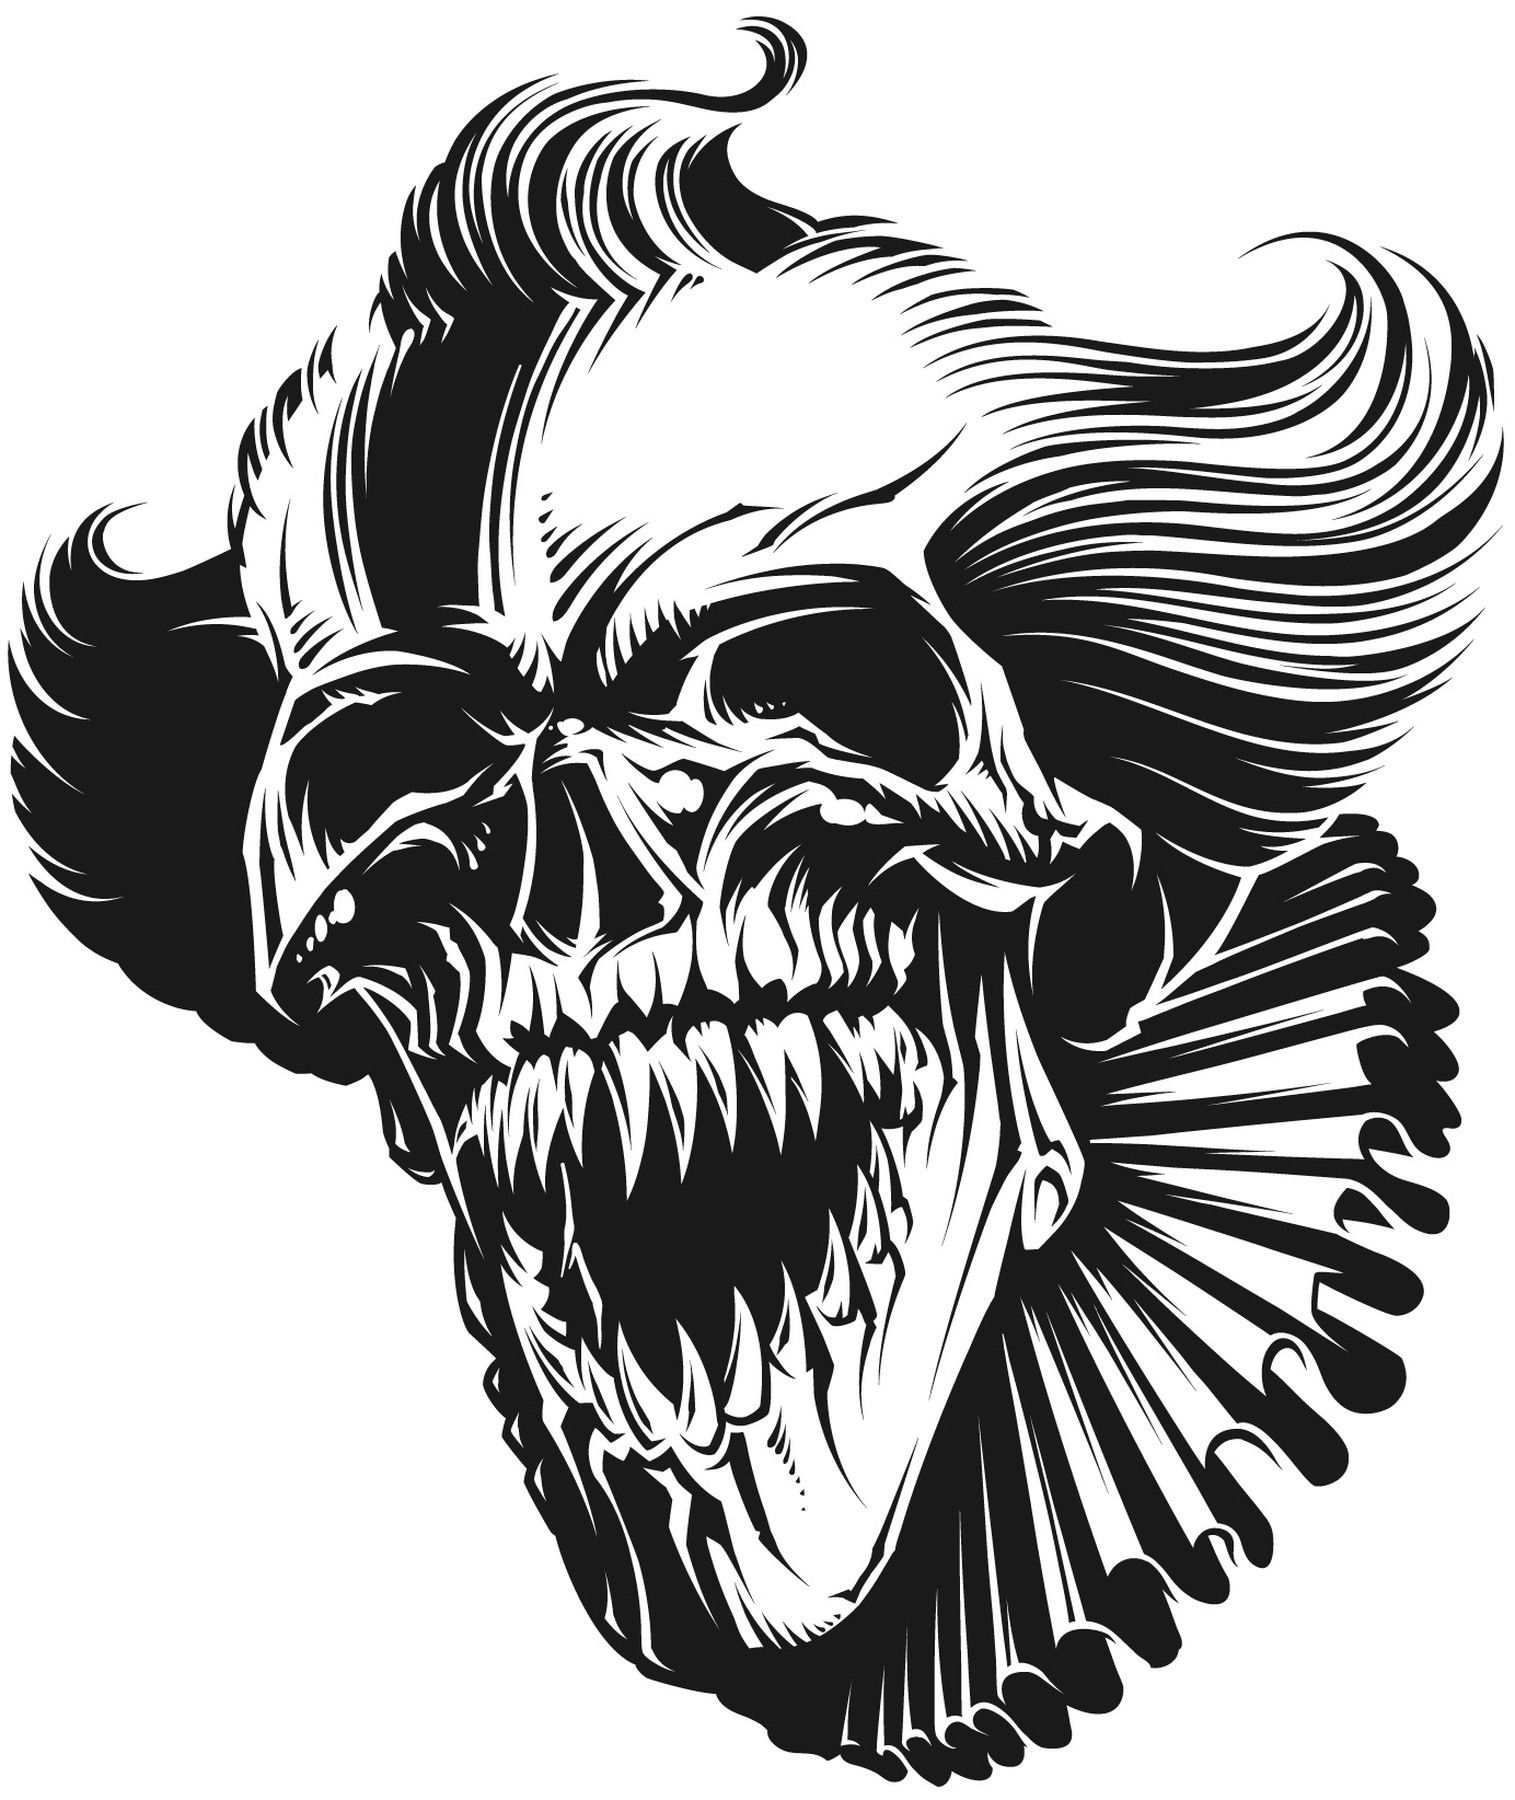 Color 28 Drawings Images Of Scary Clowns And Evil Jesters Skull Coloring Pages Halloween Coloring Book Skull Artwork